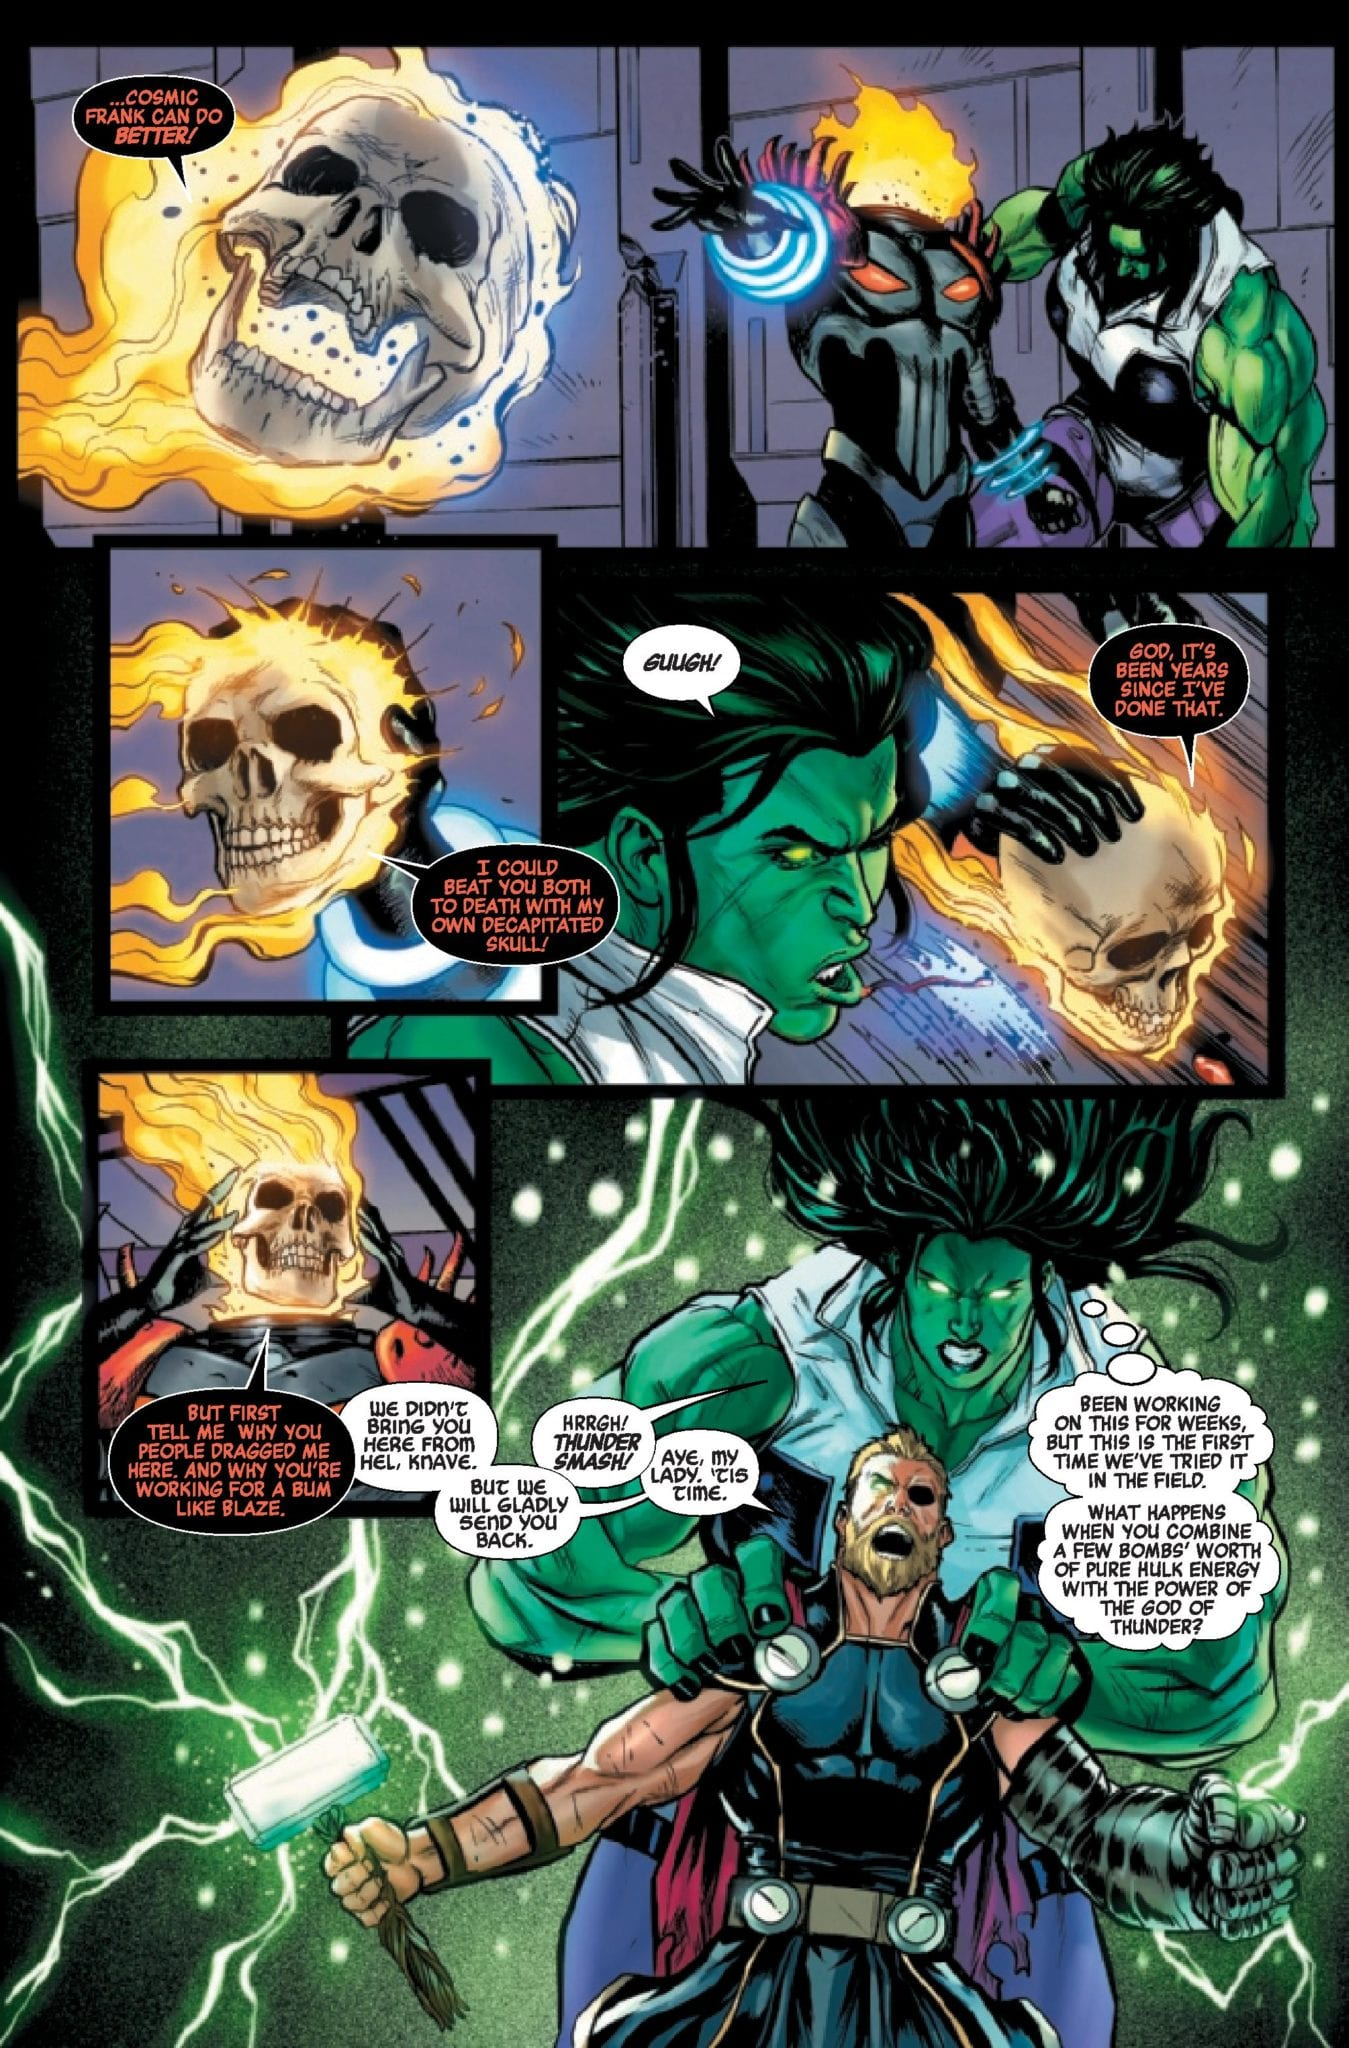 Cosmic Ghost Rider Gets Gamma Bombed In Our AVENGERS #24 Exclusive Preview 1